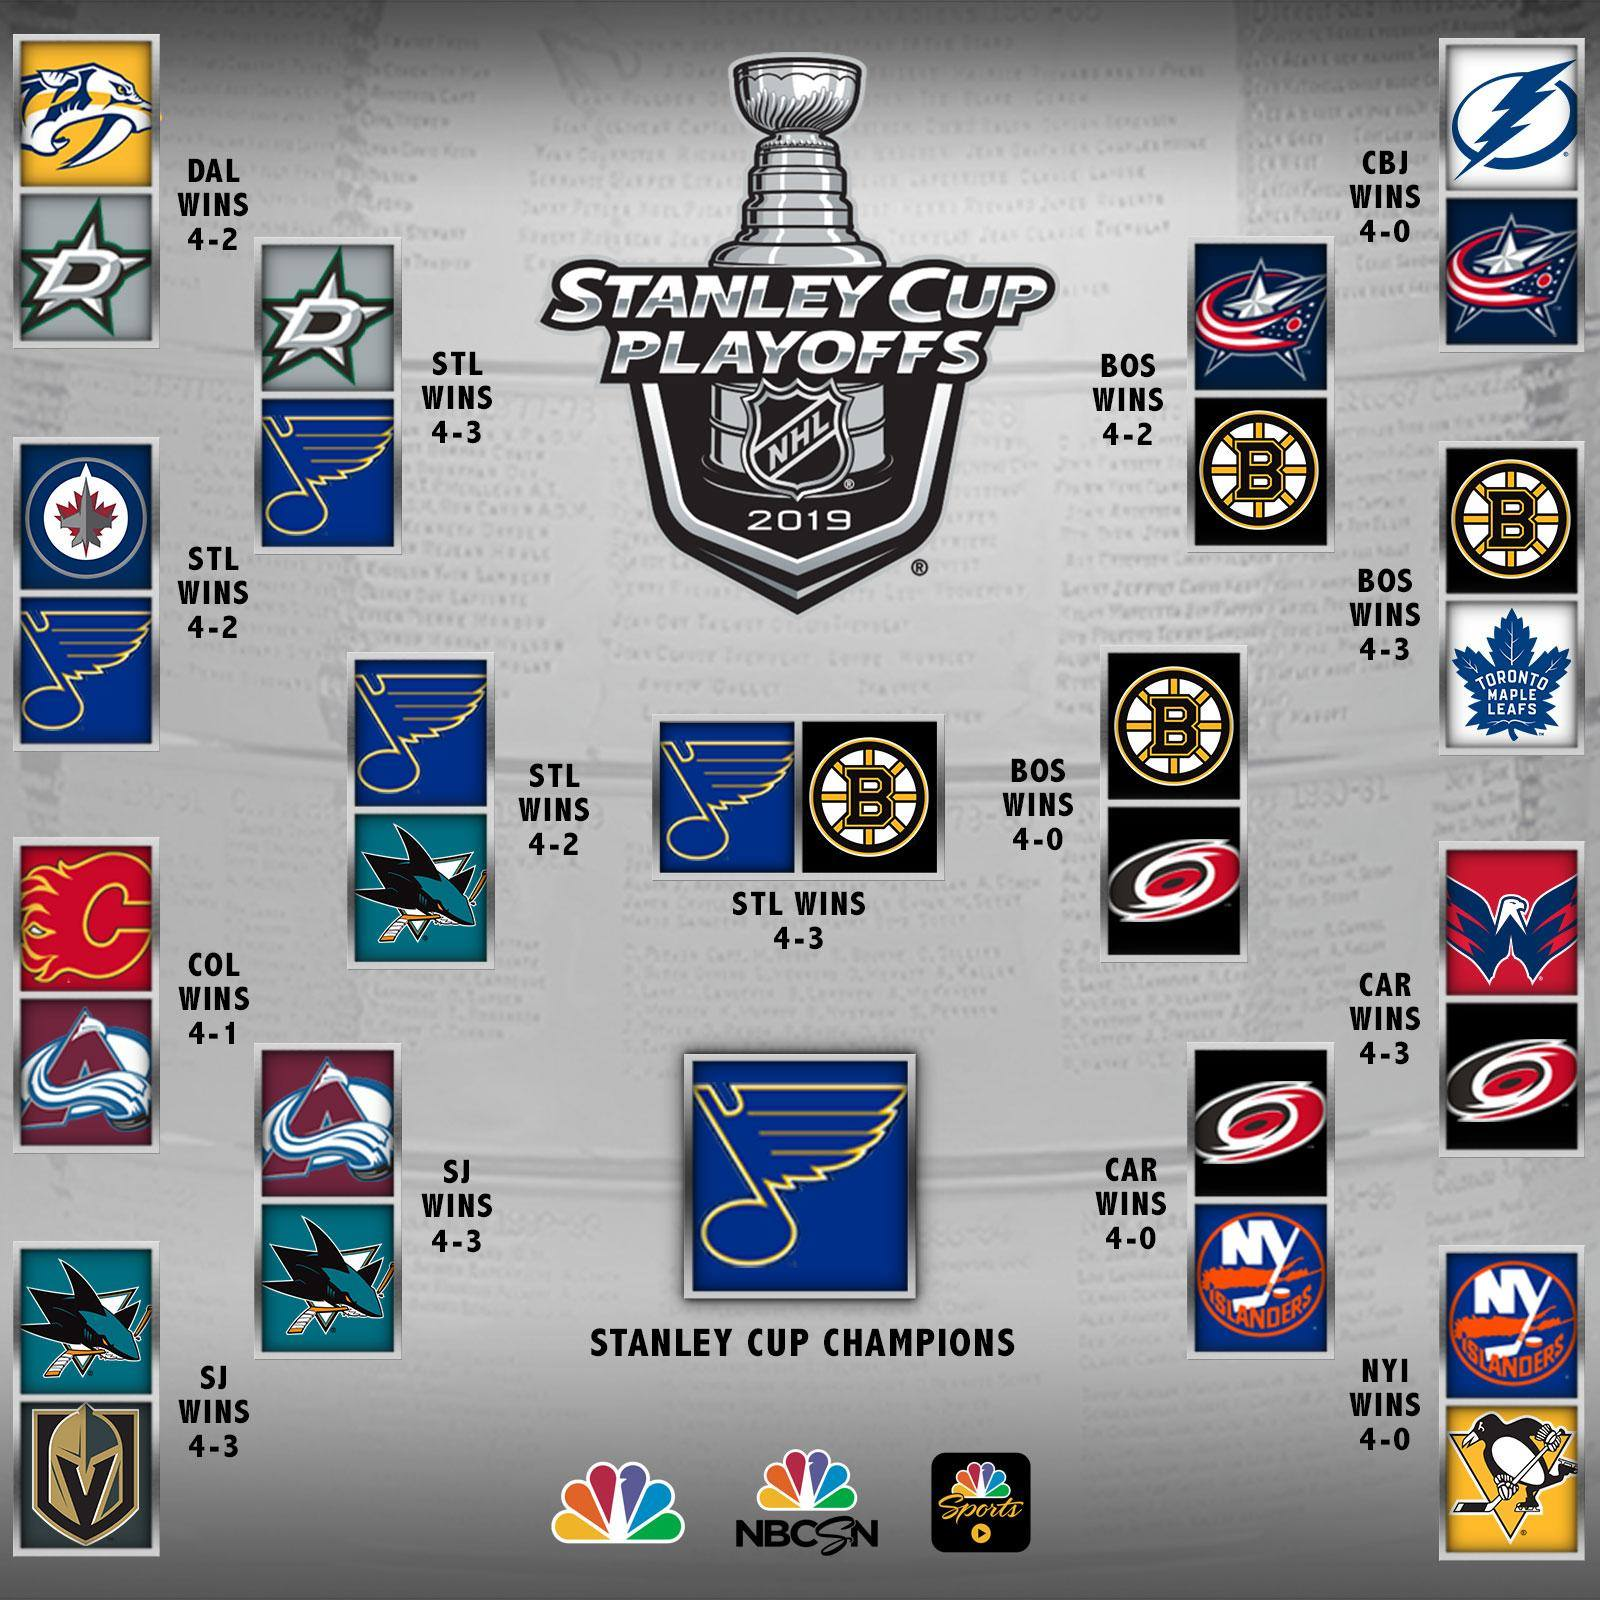 Nbc Sports 2019 Nhl Bracket 1 Complete Stanley Cup Champions Blues Nhl Red Wings Hockey